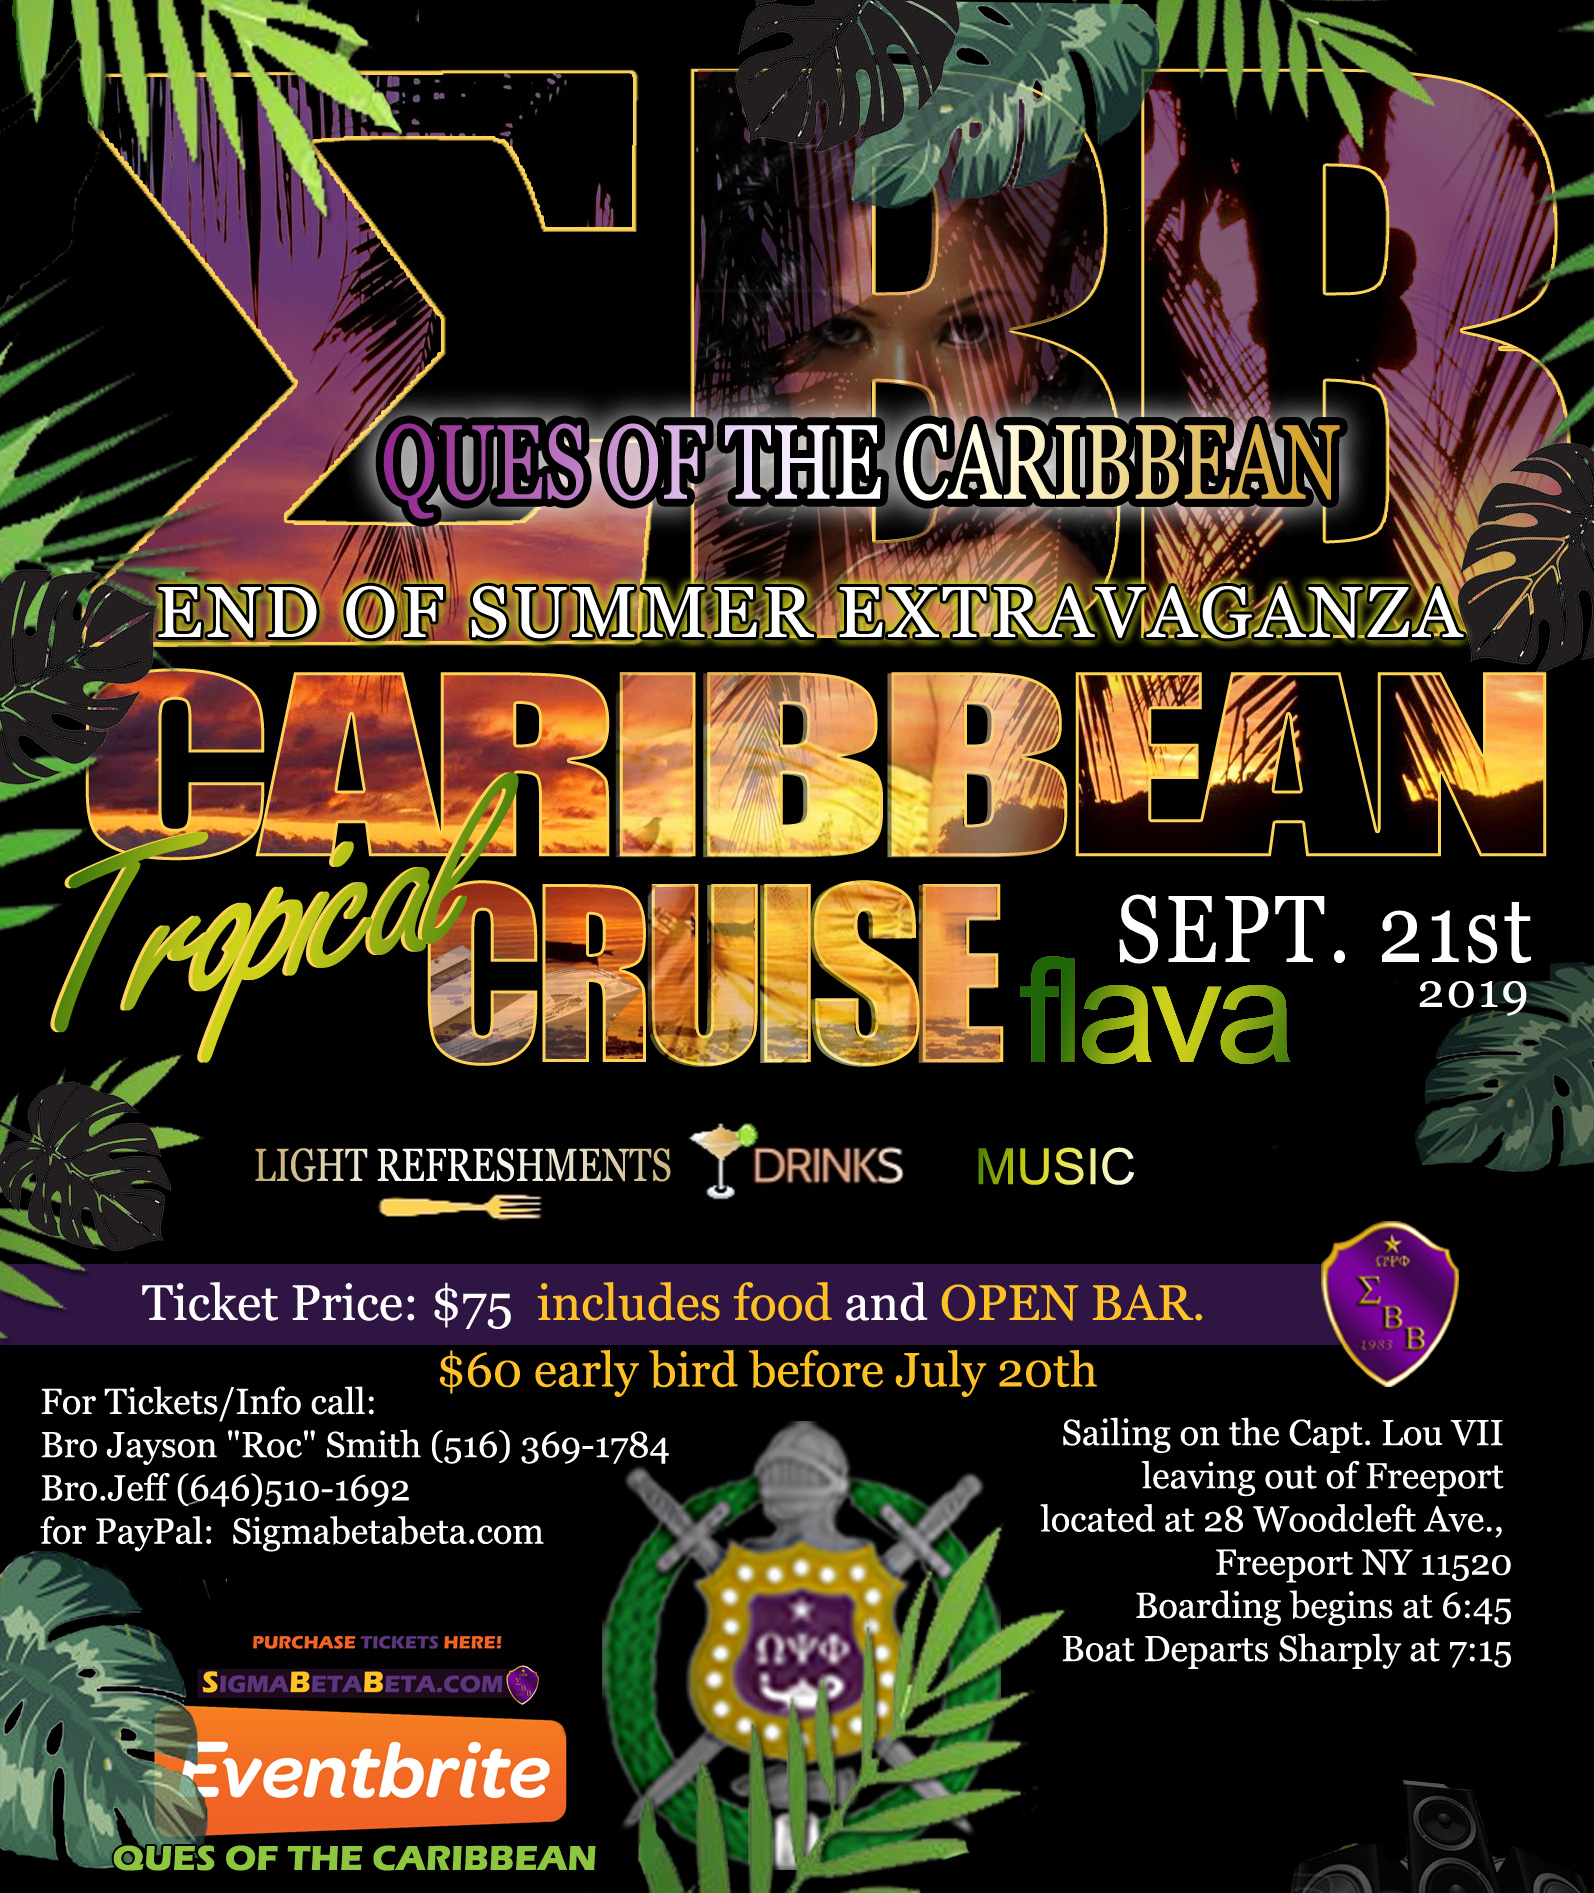 SBB Caribbean Tropical Cruise Flava Party Boat